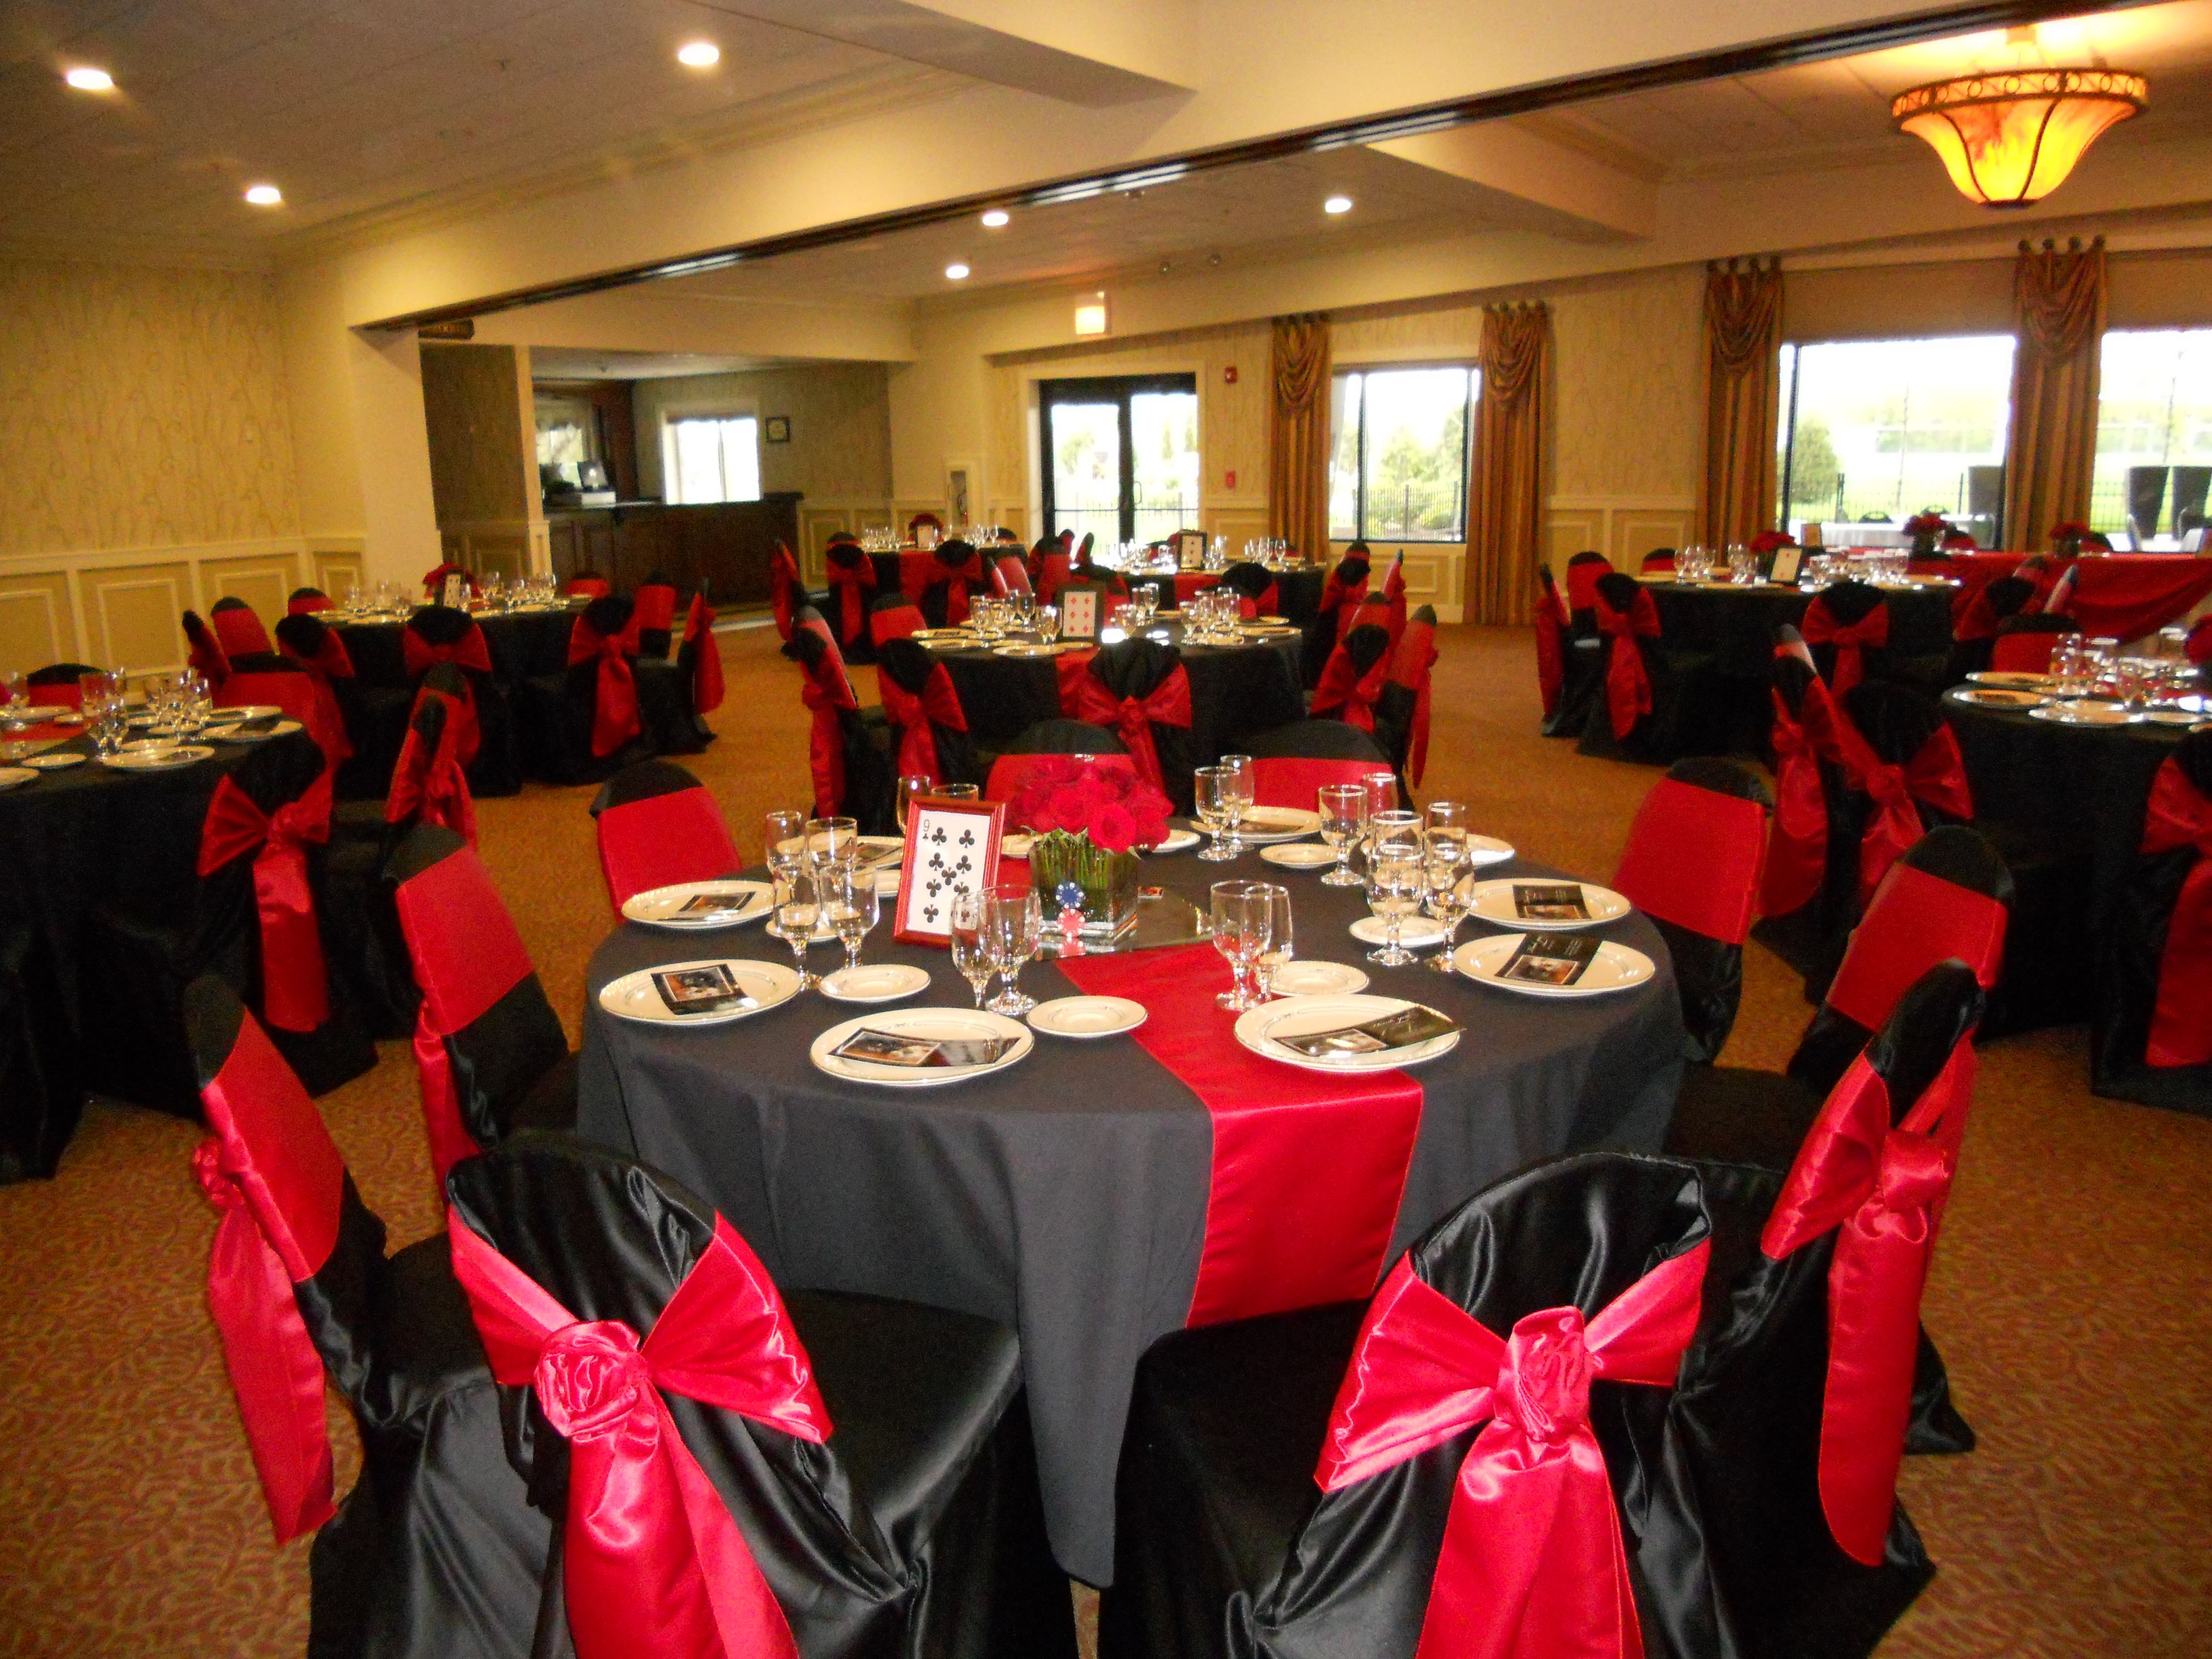 Red and black wedding decor  Black Chair Covers with Red Rose Ties  Wedding Decor  Pinterest